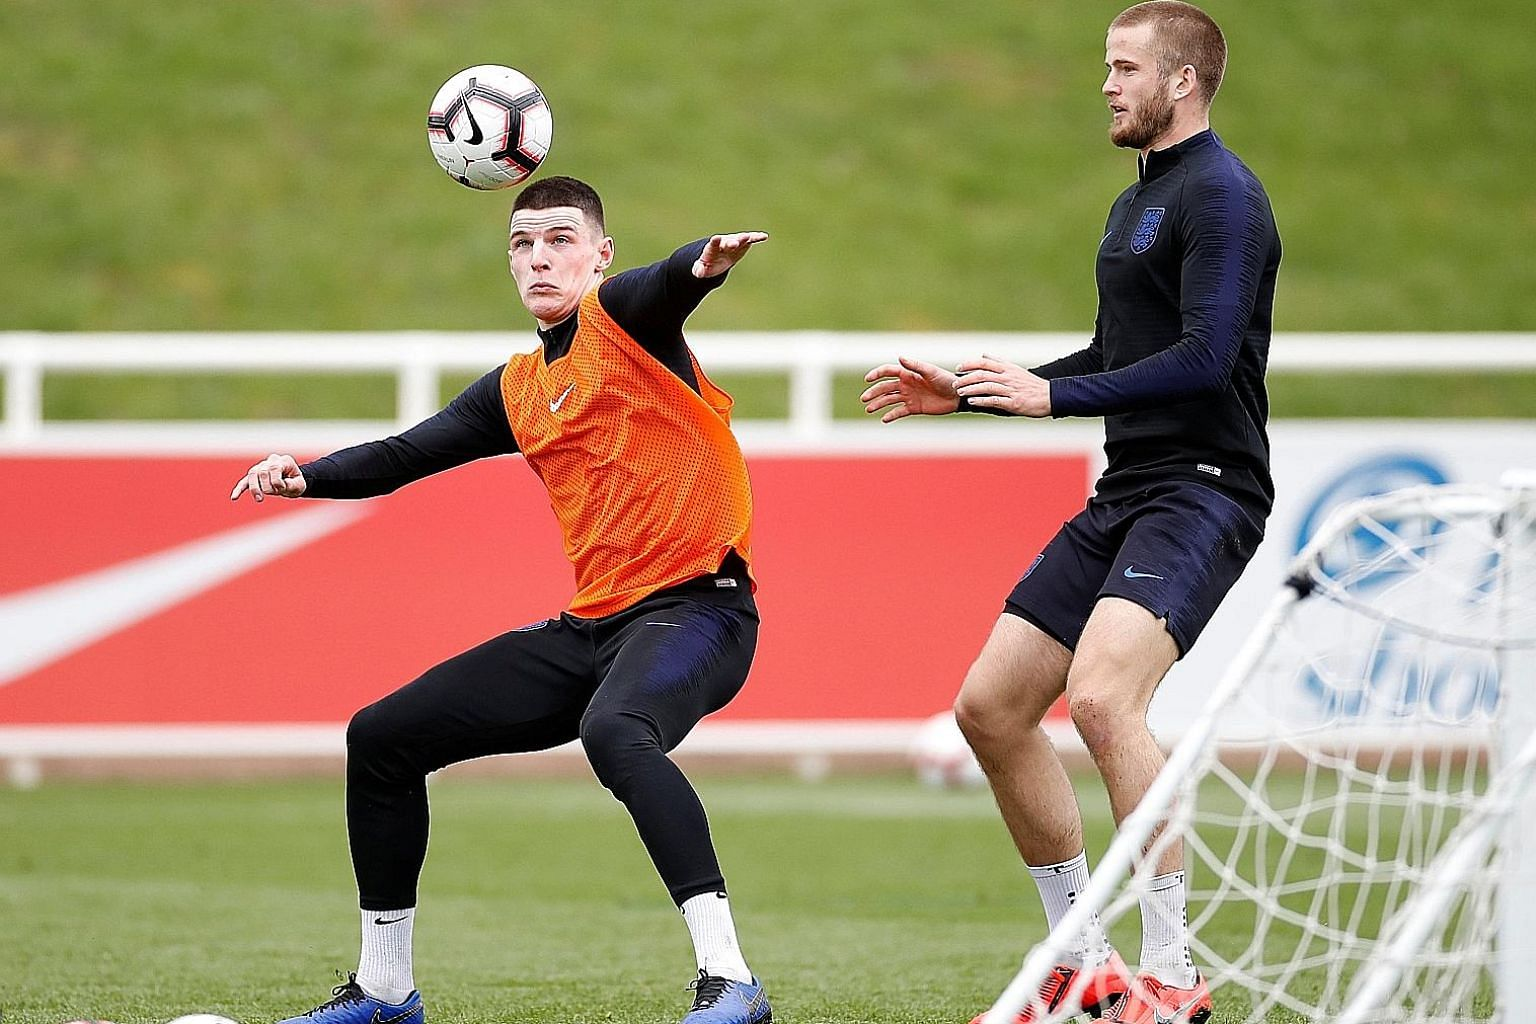 Declan Rice (left), with England teammate Eric Dier, has played three friendly internationals for the Republic of Ireland but decided to switch allegiance to England, which was approved by Fifa earlier this month.